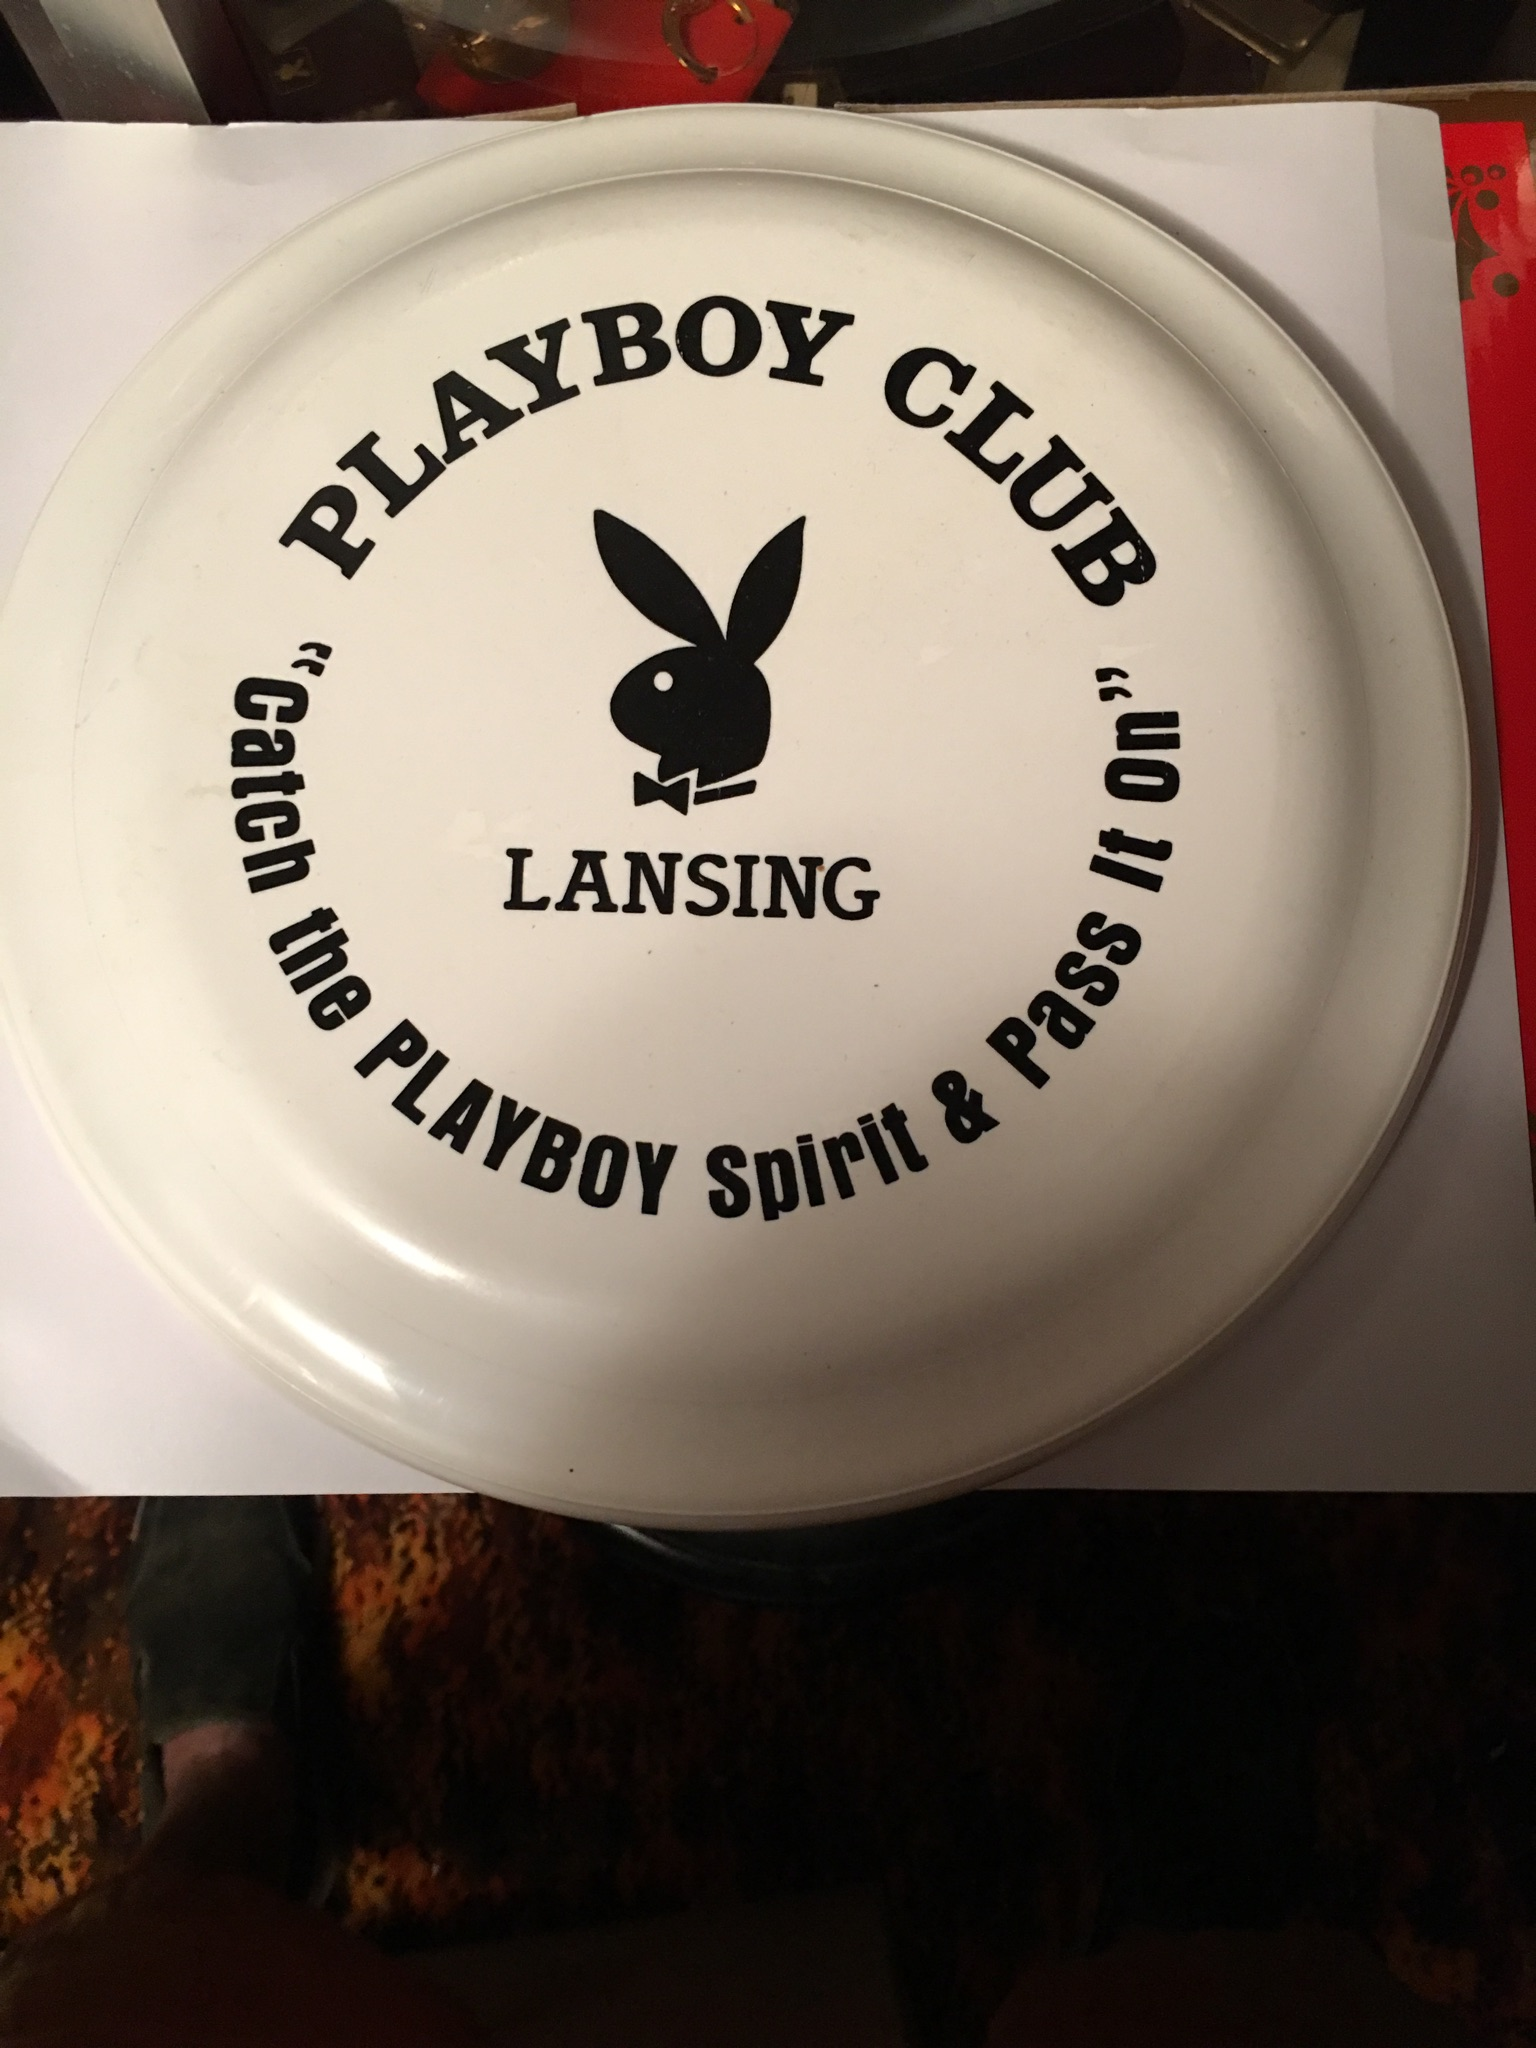 Lansing Playboy Club Frisbee